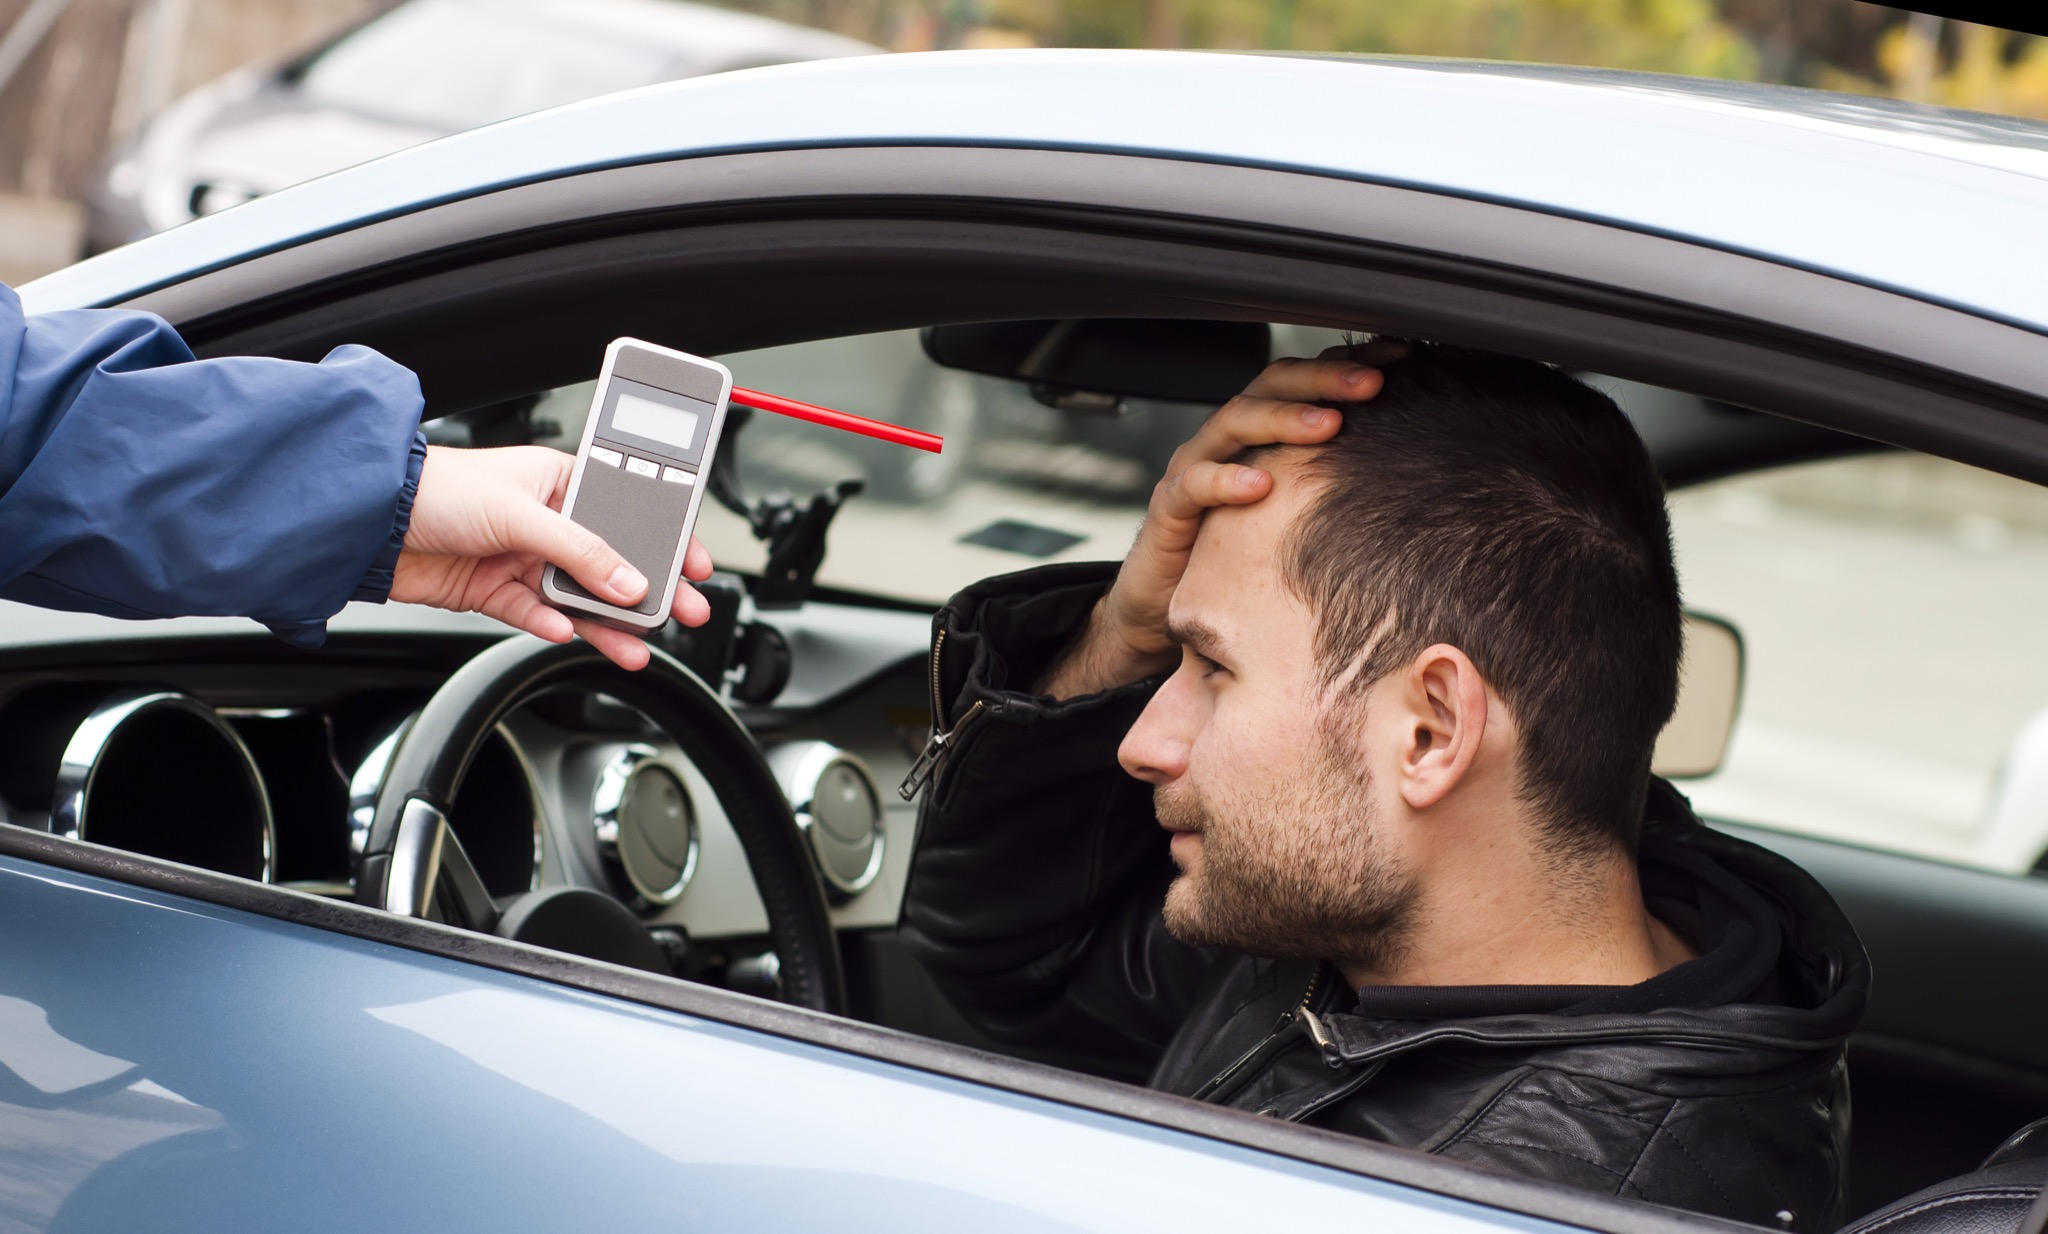 young drunk driver crashed when asked for breathalyzer test for alcohol content